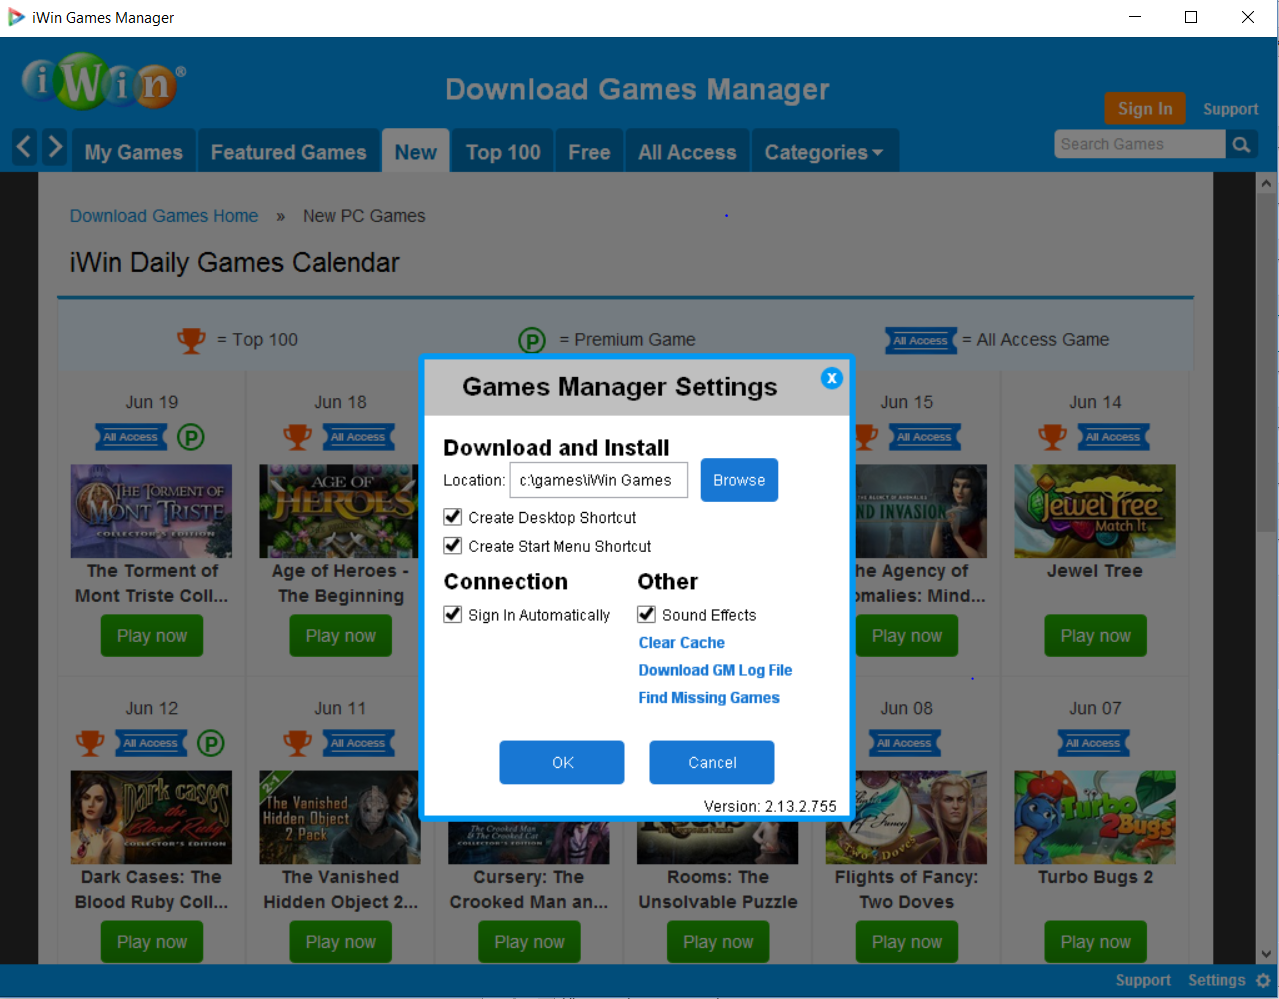 iWin Games Manager Survey